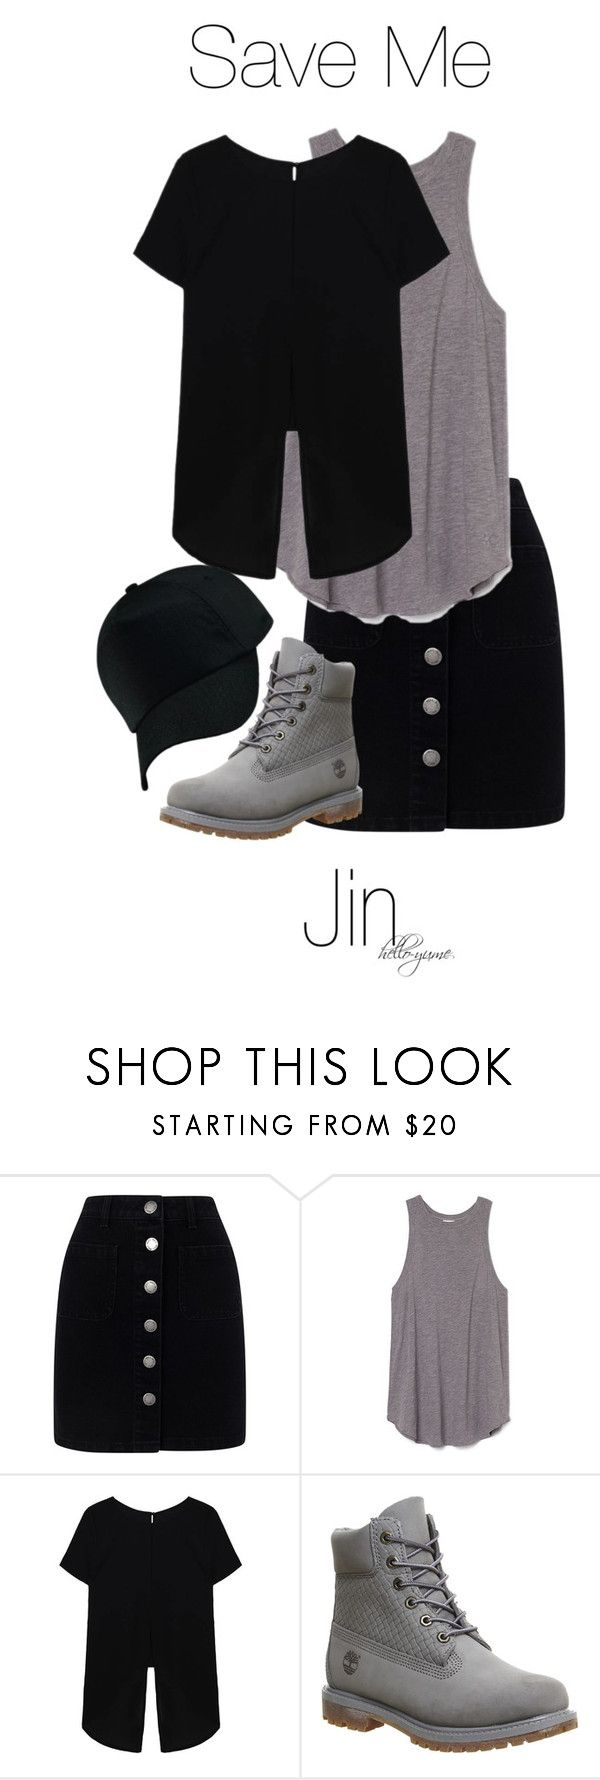 """Save Me - Jin"" by hello-yume ❤ liked on Polyvore featuring Miss Selfridge, Timberland and bts"